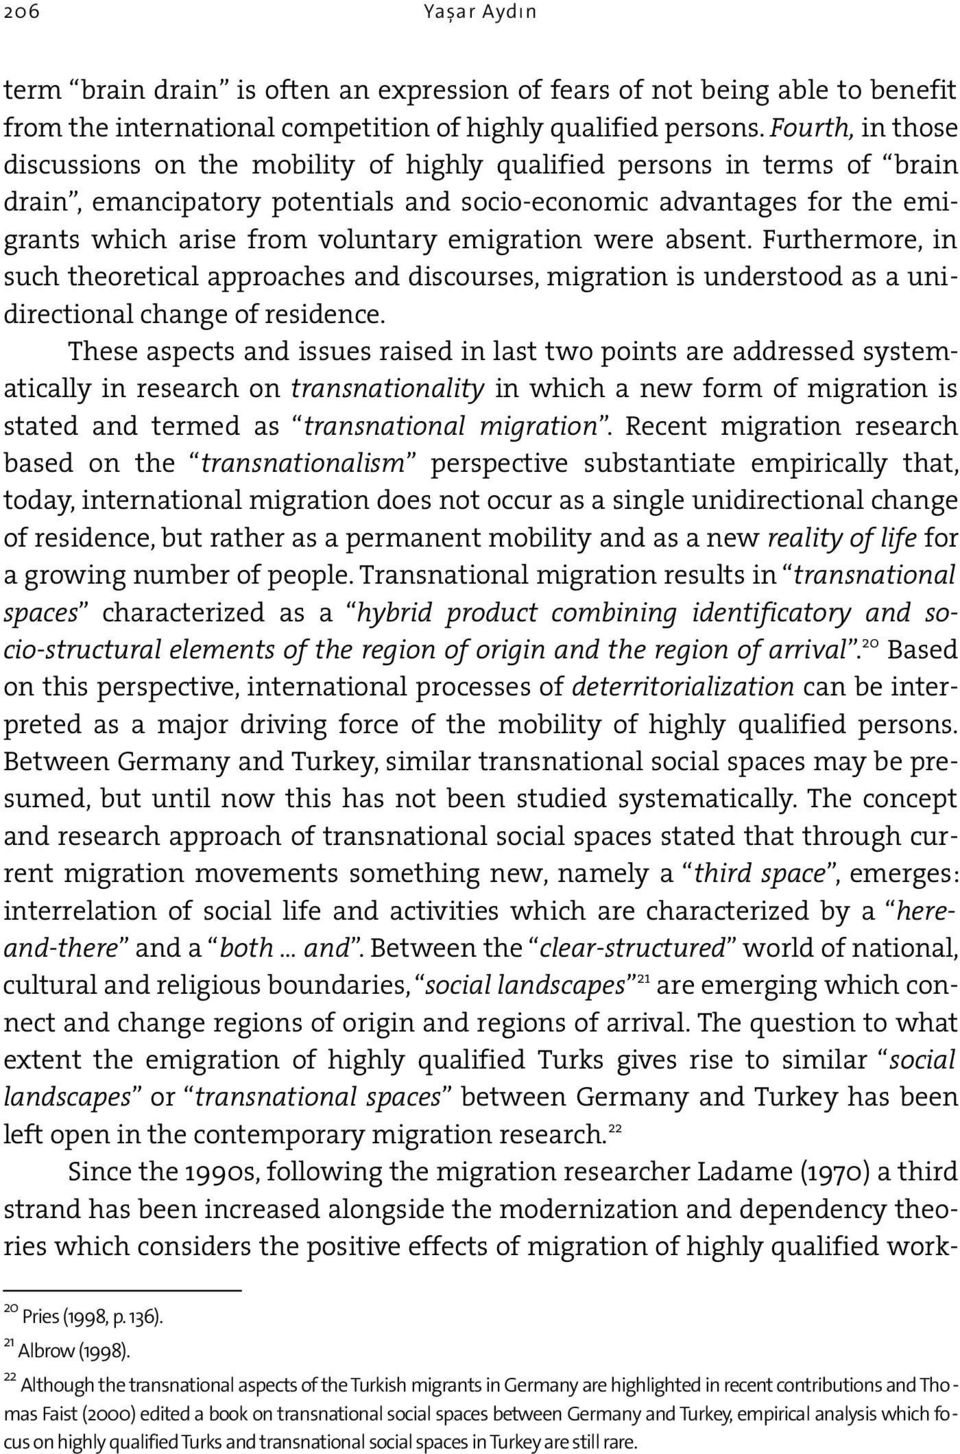 emigration were absent. Furthermore, in such theoretical approaches and discourses, migration is understood as a unidirectional change of residence.